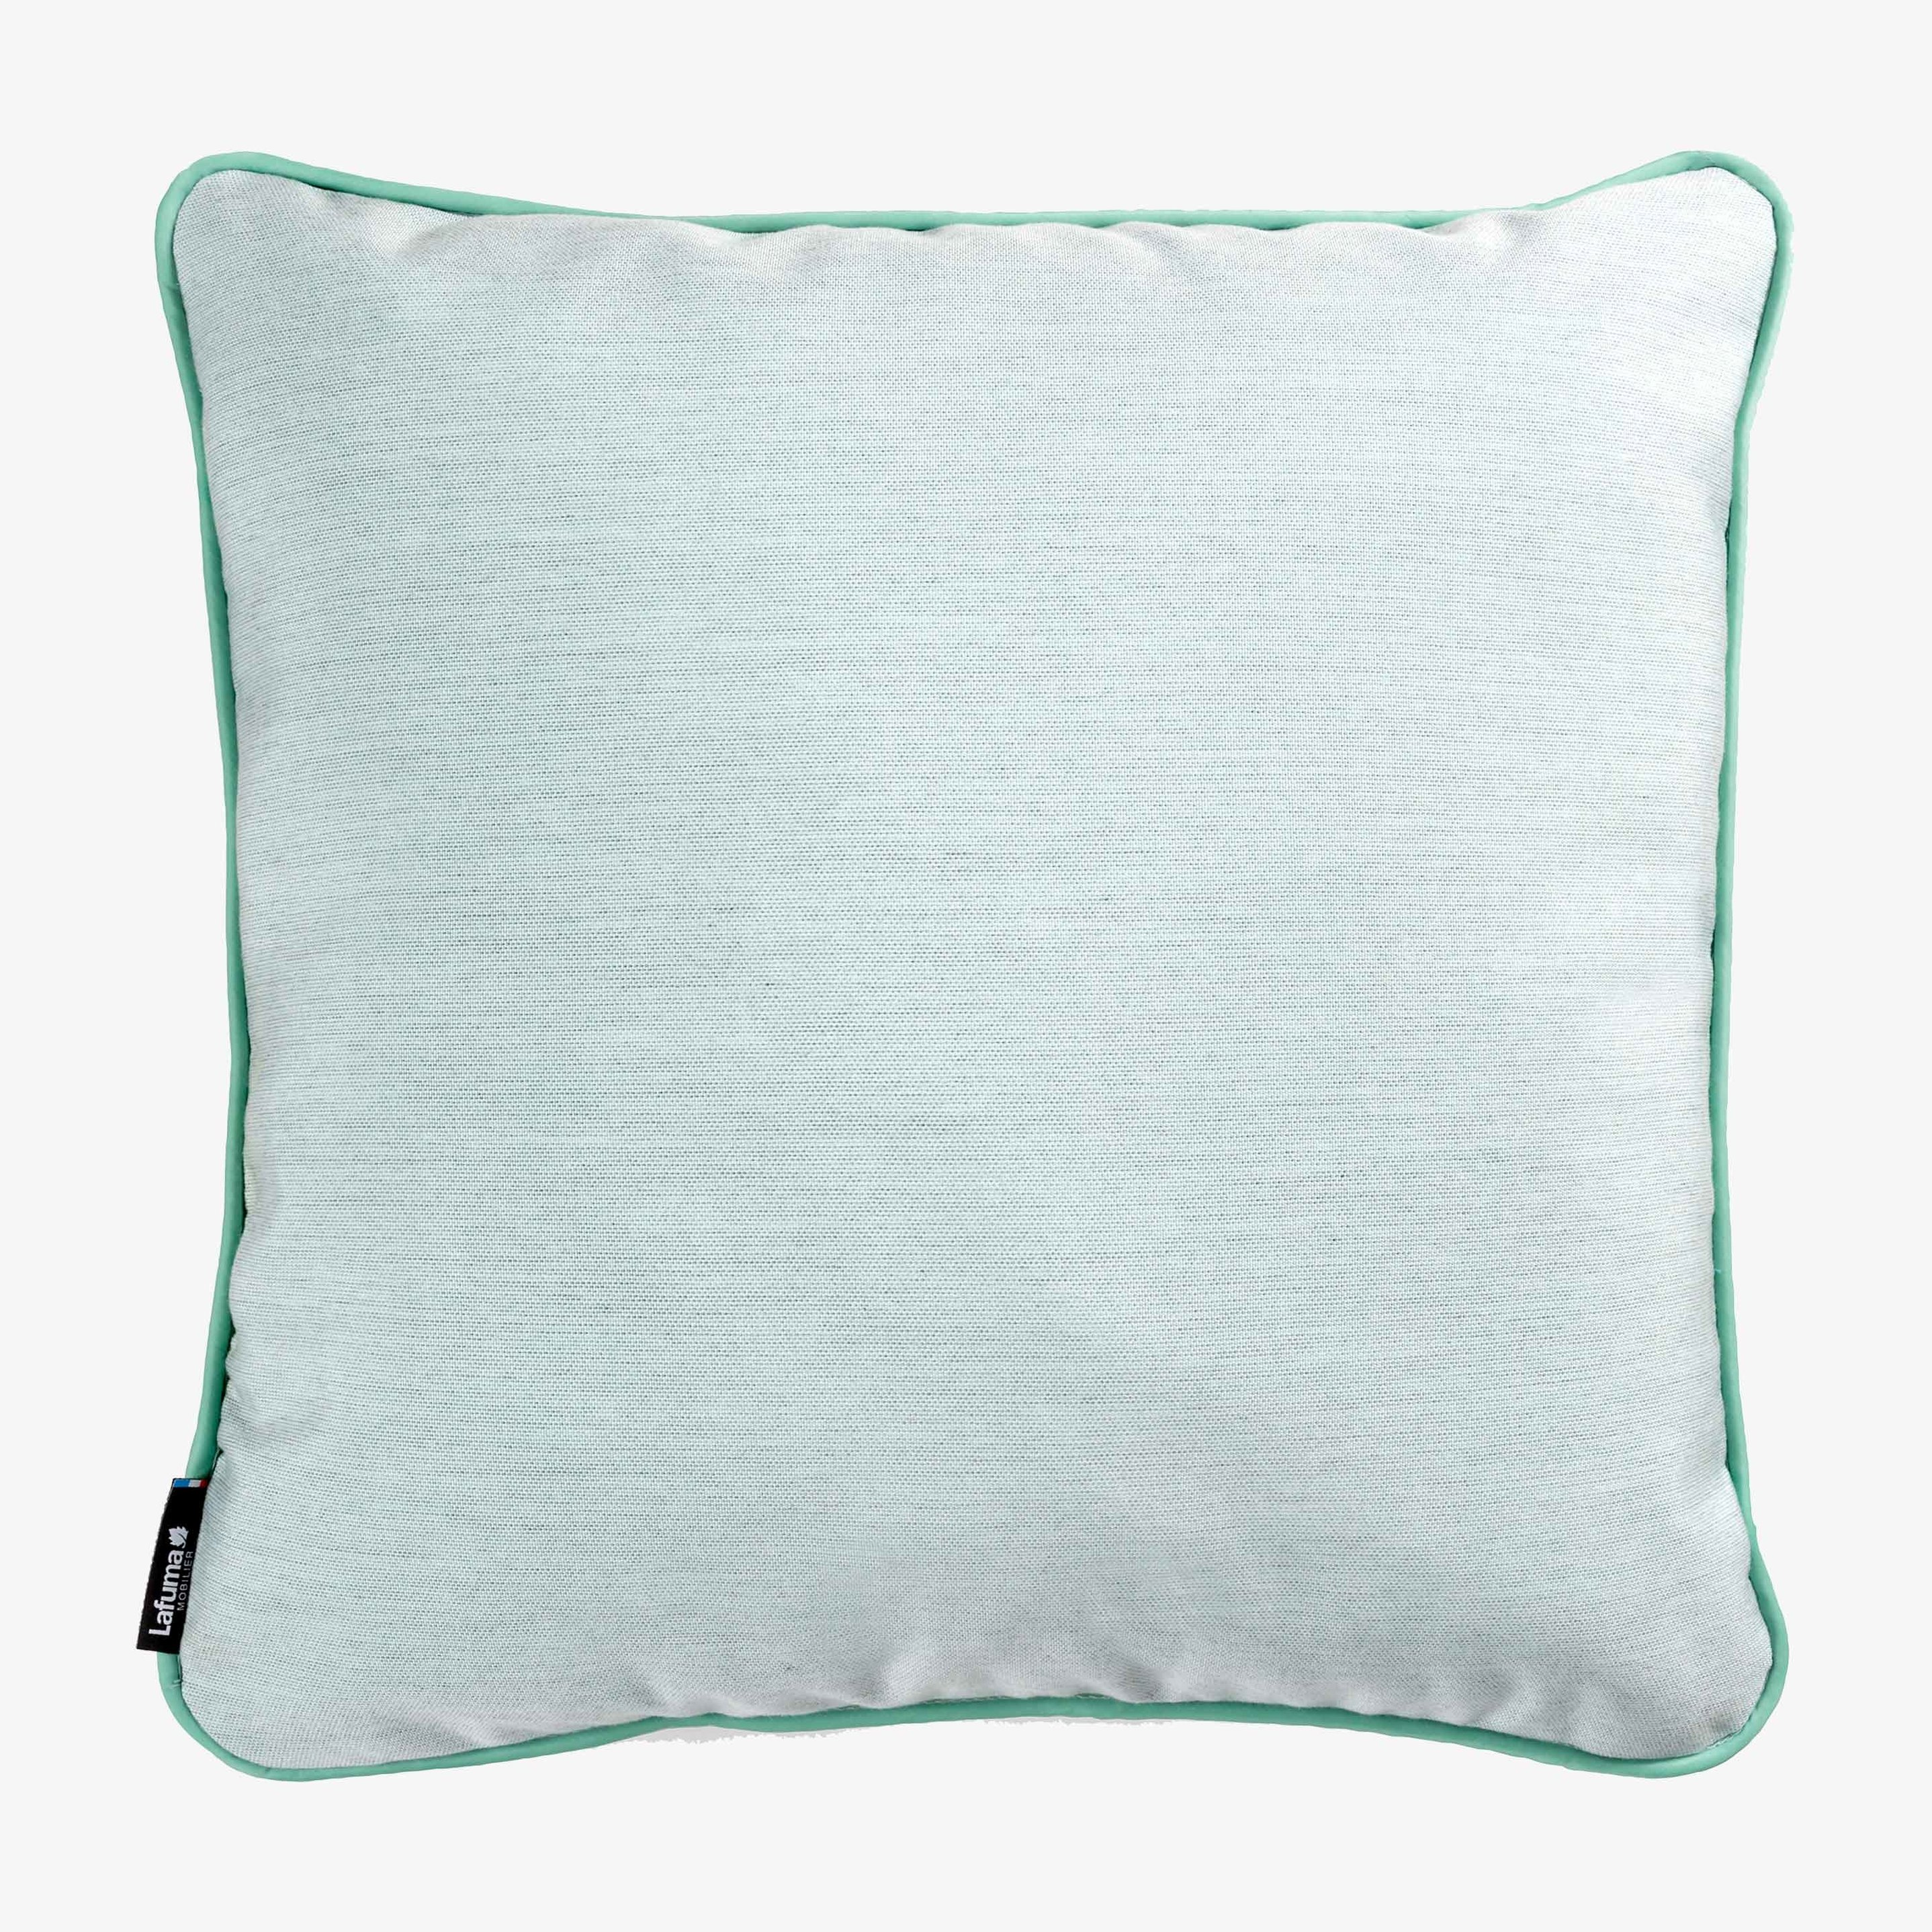 EROME SQUARE CUSHION